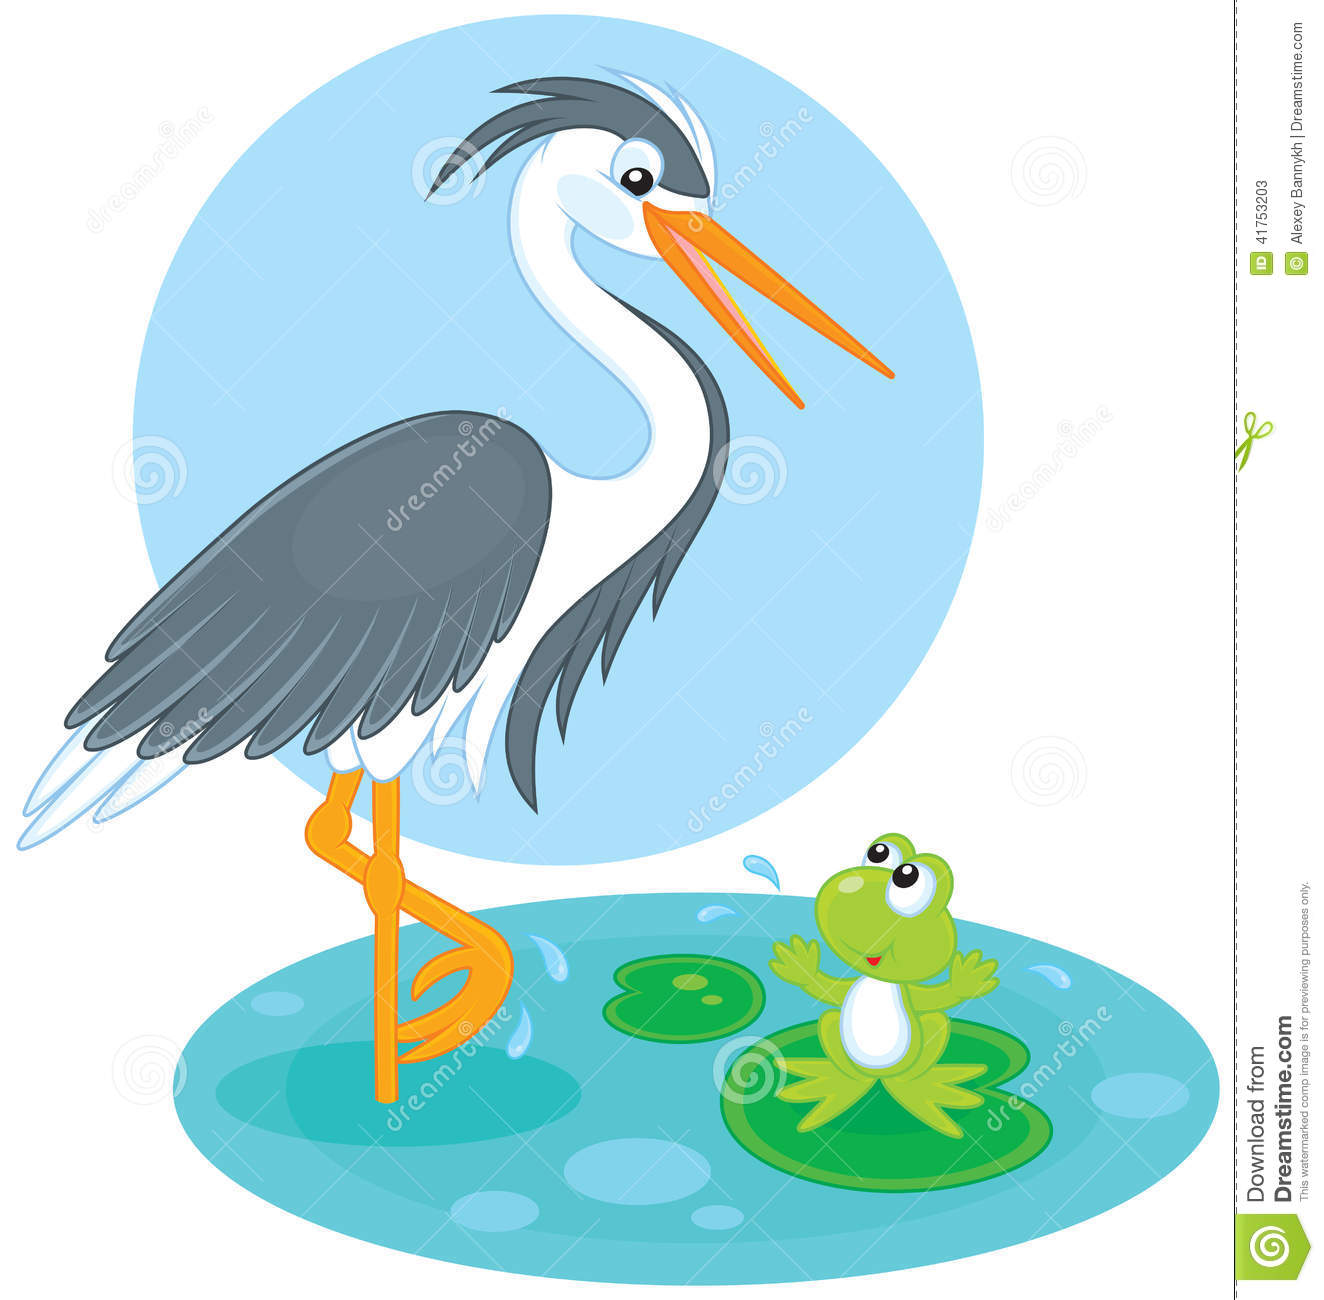 blank map of the united states with Stock Illustration Heron Frog Egret Standing One Leg Green Sitting Big Leaf Water Lily Image41753203 on File Safeway store numbers by state in 1932 as well Stock Images Blank Notebook Cover Over White Background Reflection Image31660104 furthermore Stock Illustration Page Template Presentation Steps Option Blank Range Modern Style Design Cover Business Brochure Vector Illustration Eps Can Be Image50205424 further File Raionul Camenca  Transnistria also Carte.